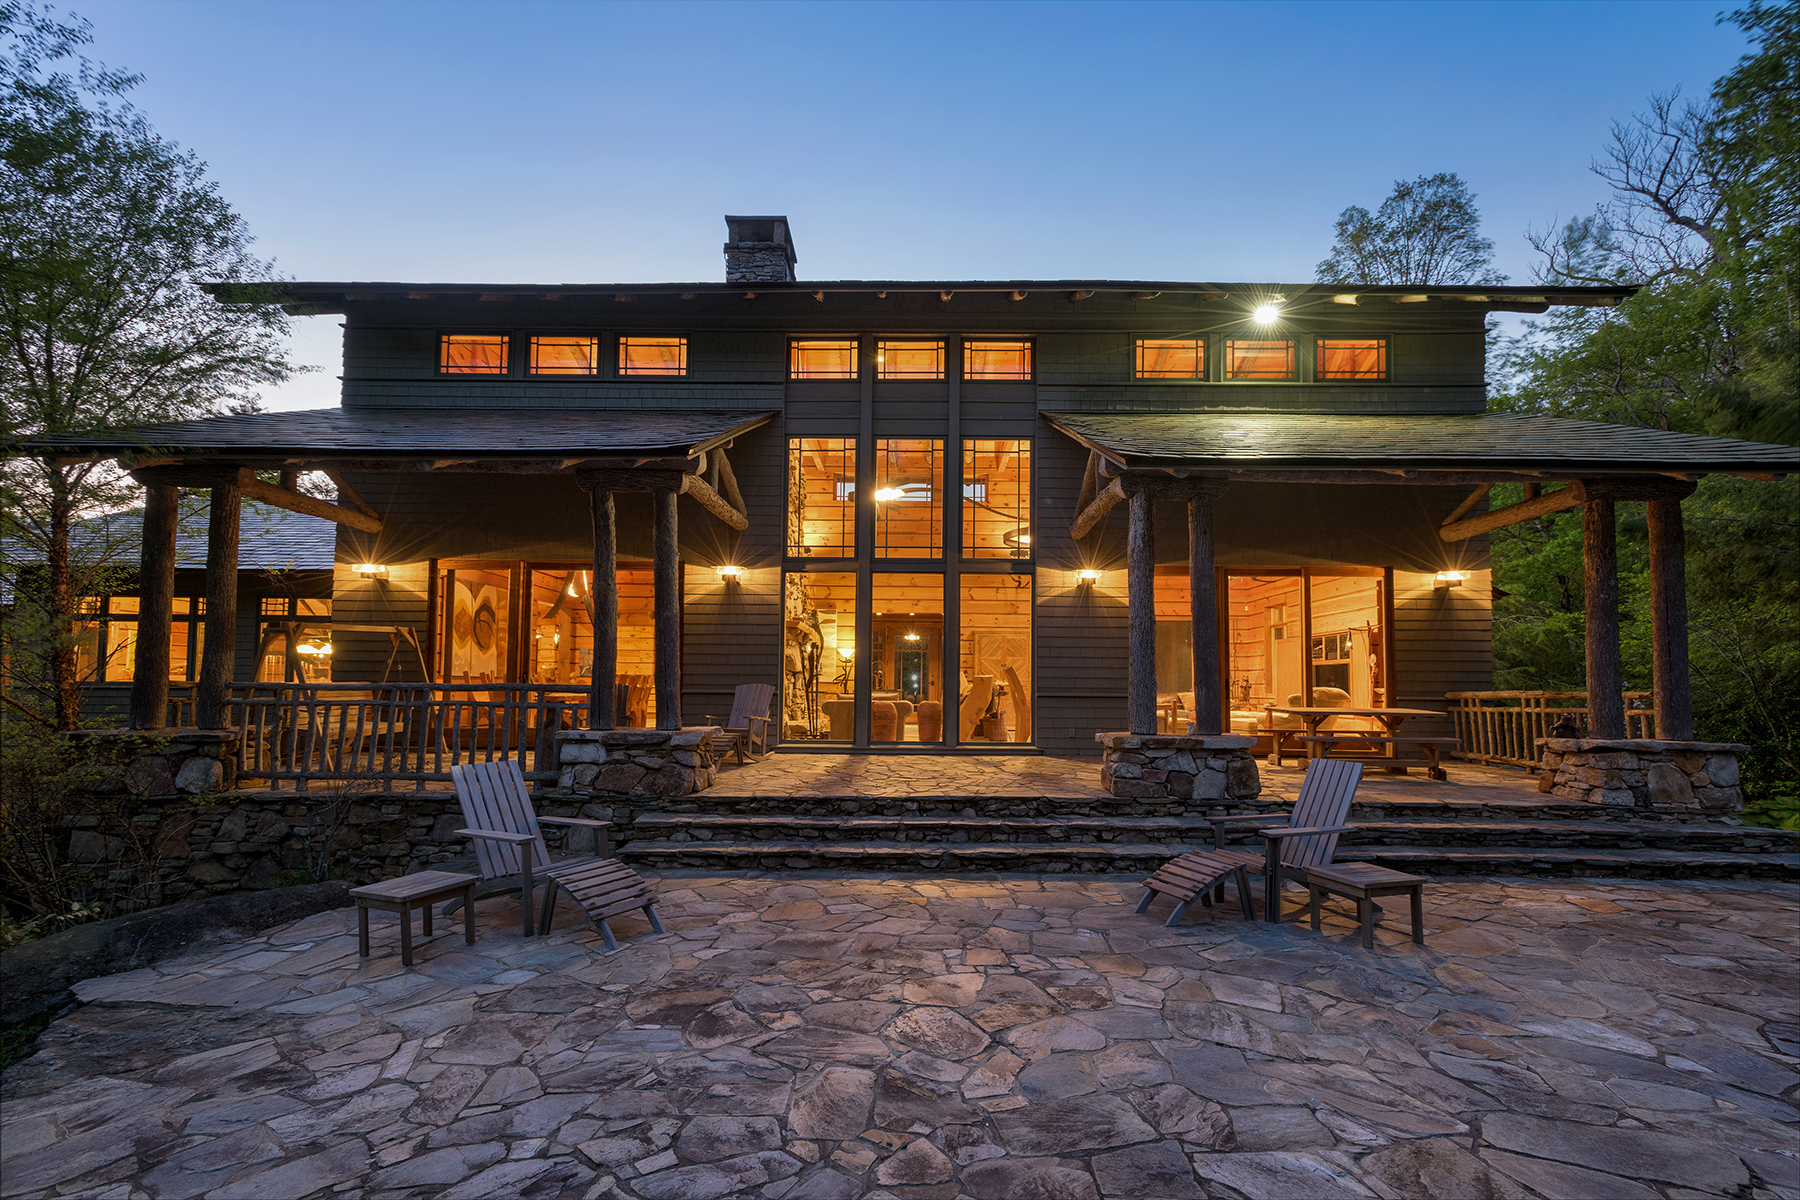 Additional photo for property listing at GRANDFATHER GOLF AND COUNTRY CLUB 1453  Mountain Springs Rd,  Linville, North Carolina 28646 United States